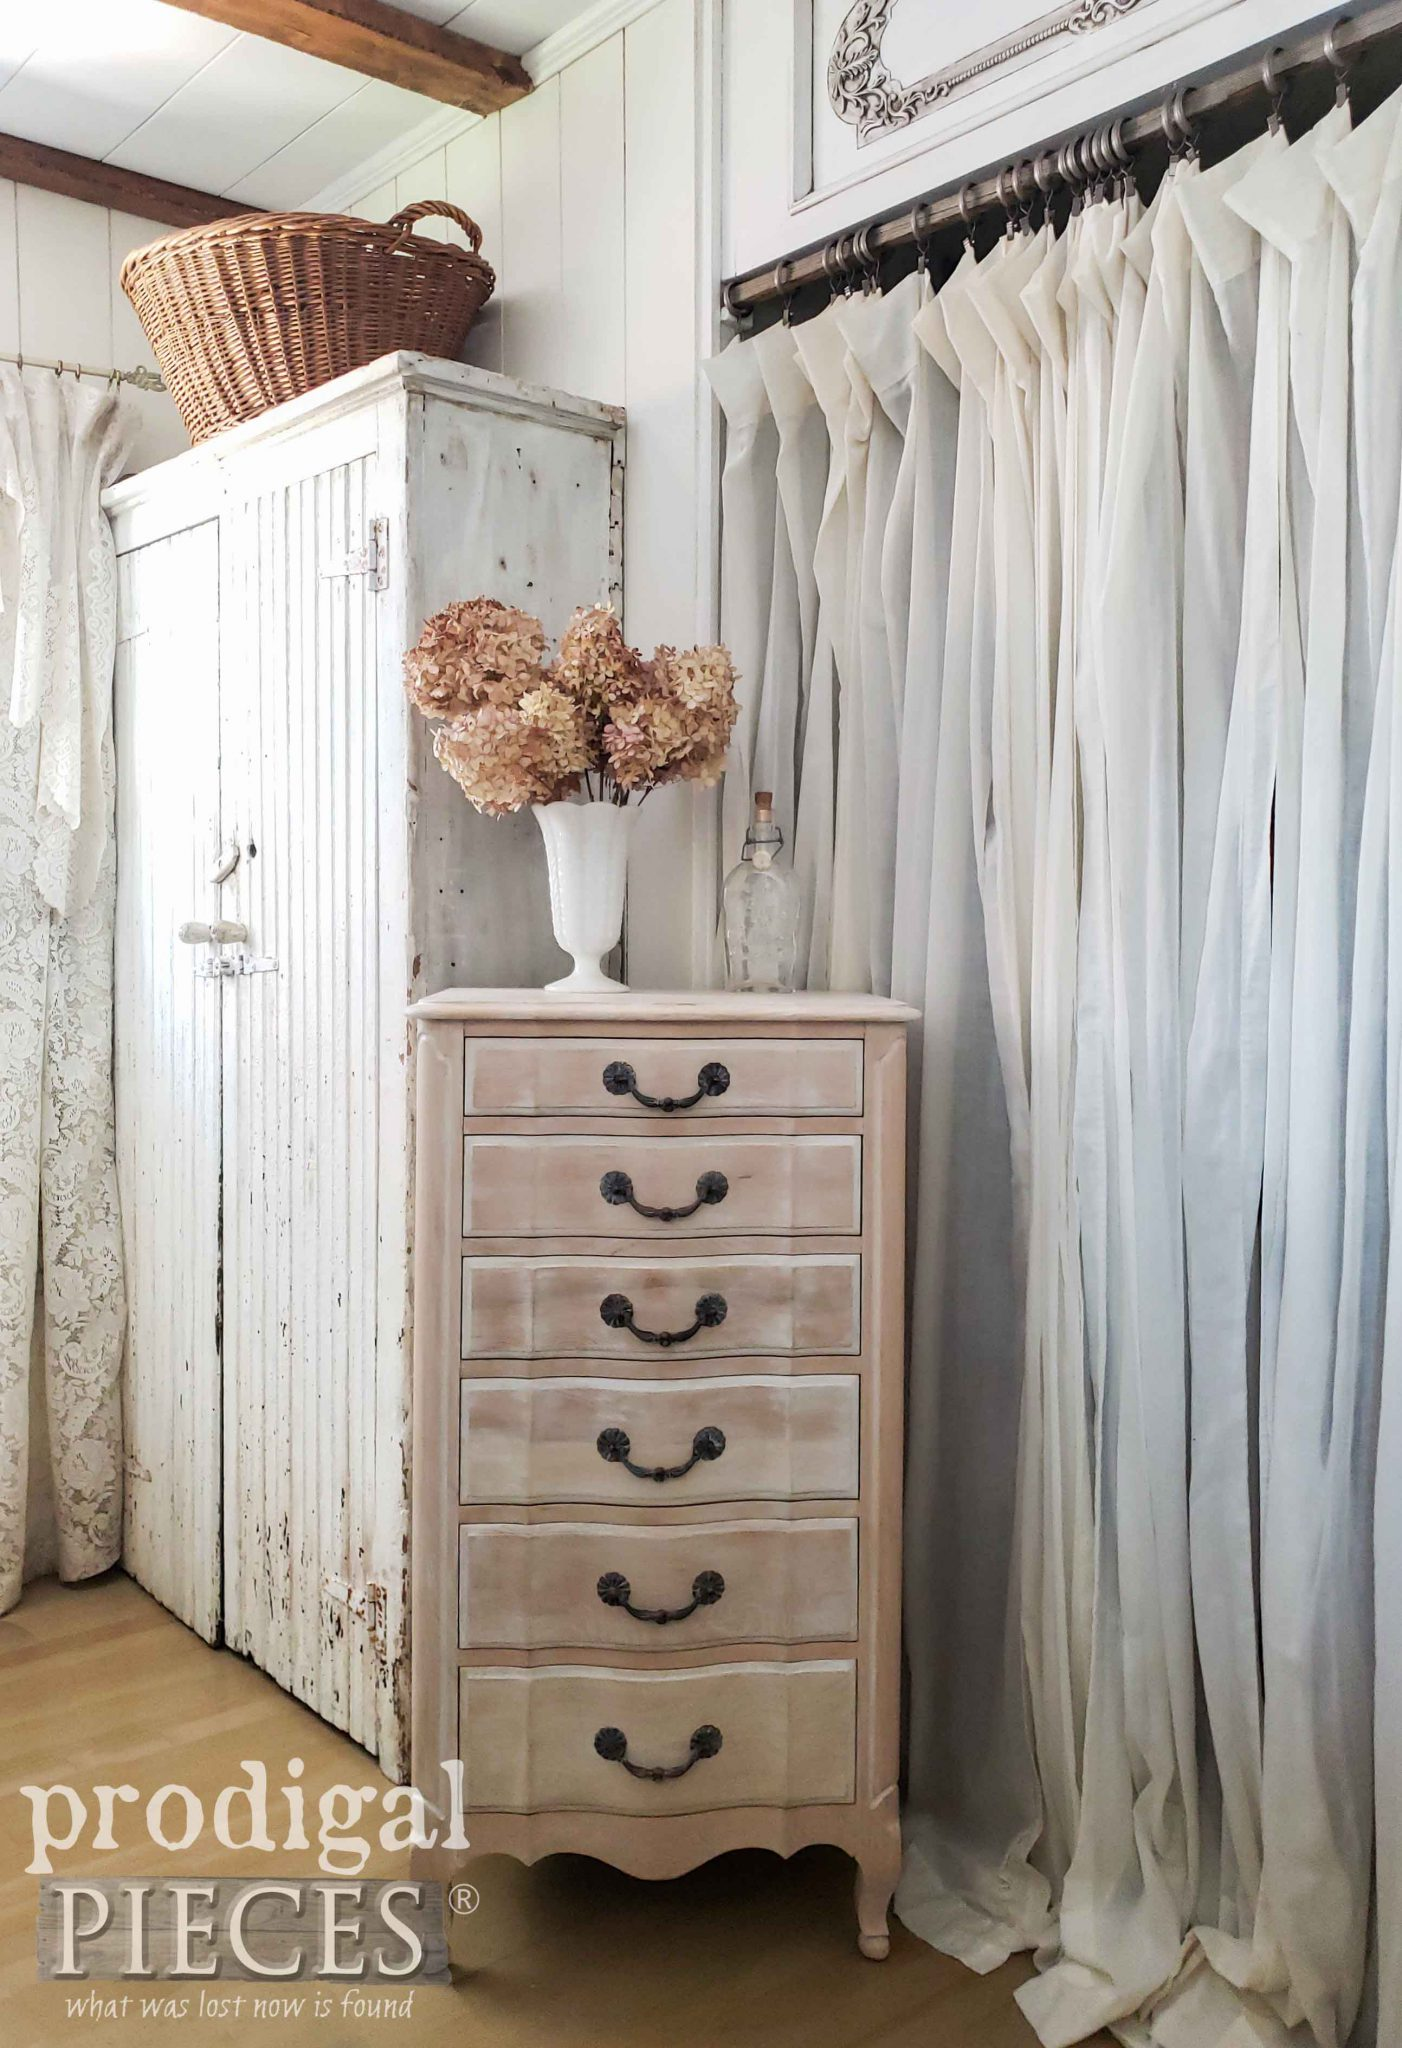 French Style Lingerie Chest After Restoration by Larissa of Prodigal Pieces | Details at prodigalpieces.com #prodigalpieces #furniture #diy #home #homedecor #farmhouse